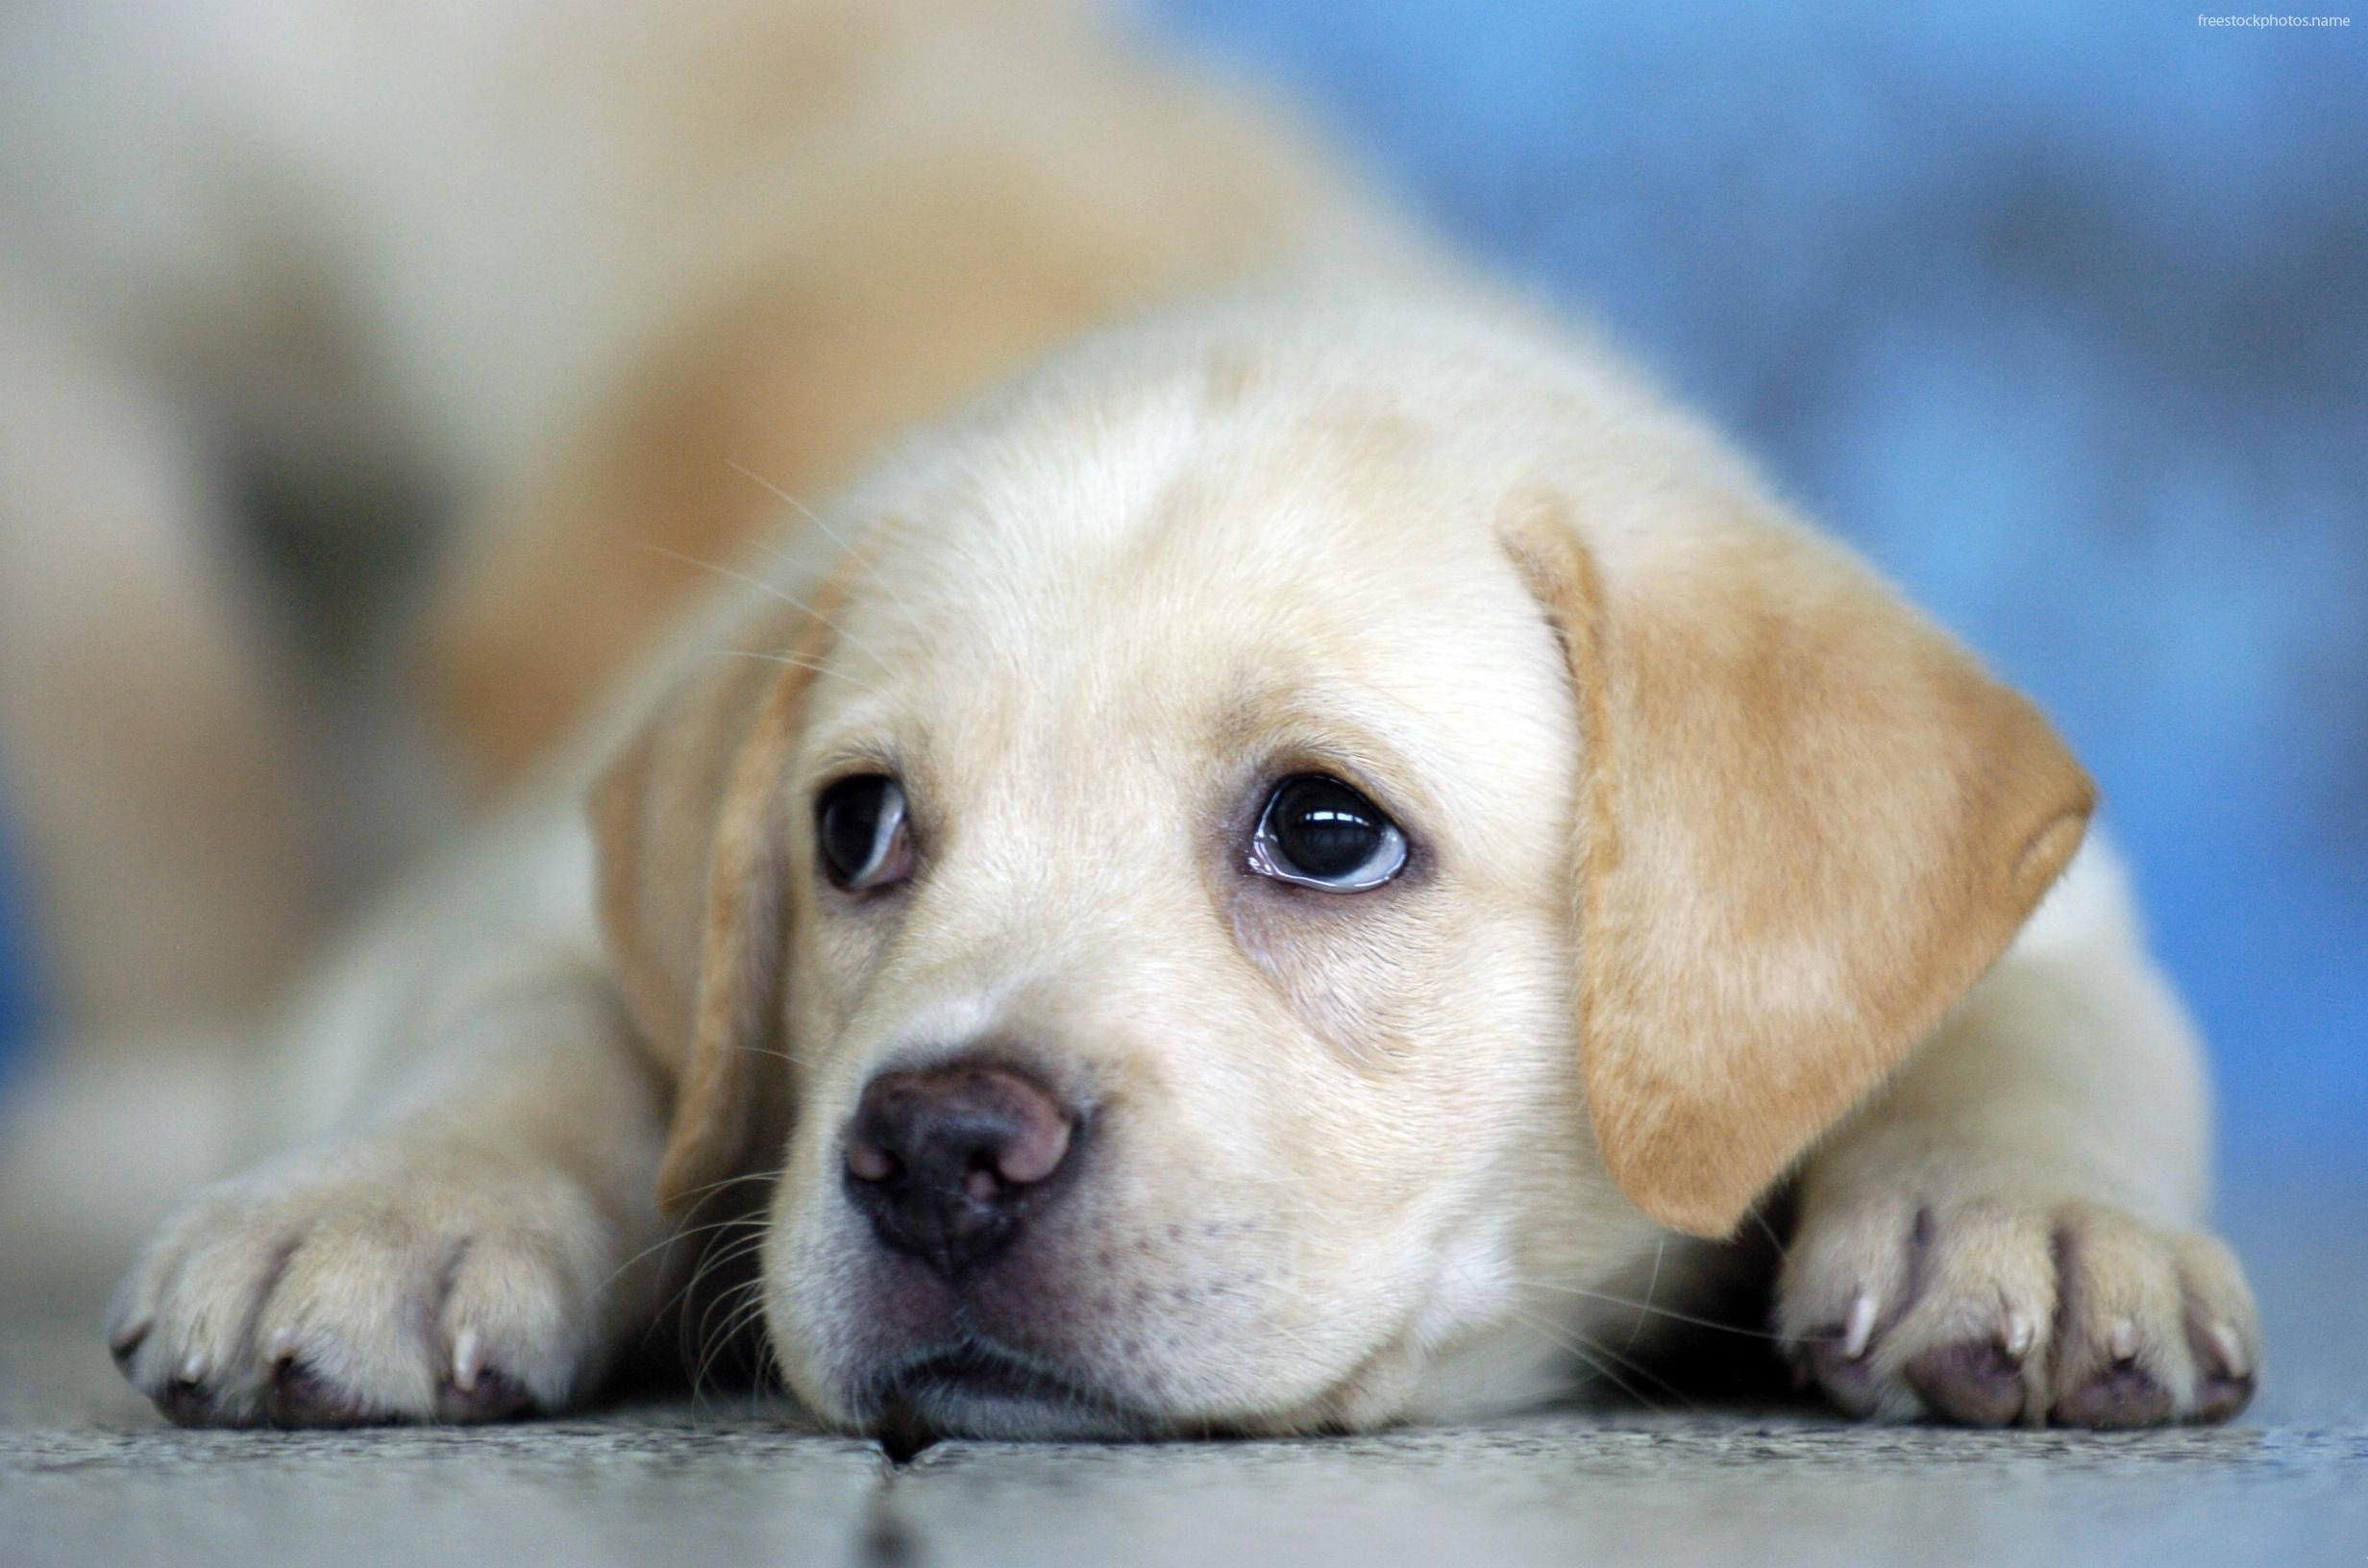 Dogs And Puppies Wallpaper Cute Dogs and Puppies ...